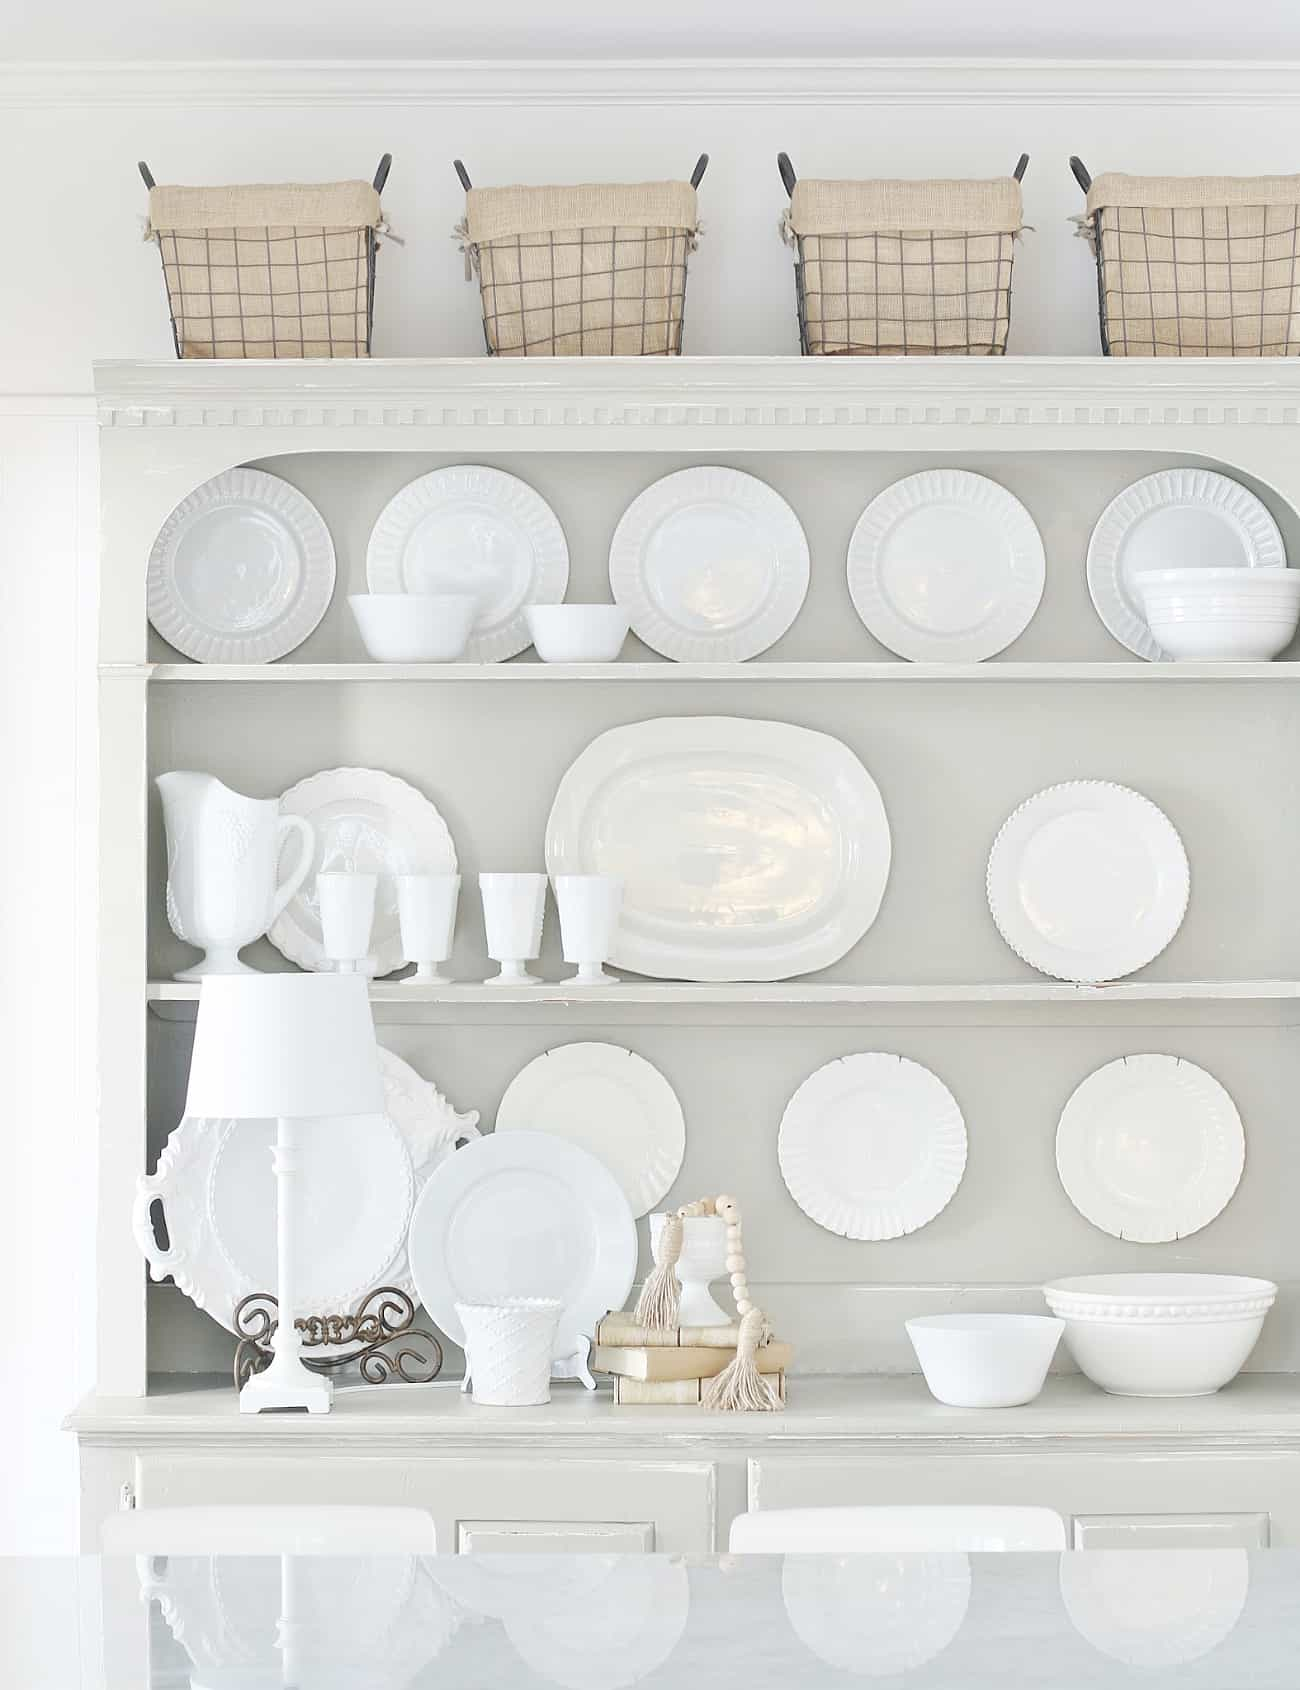 7 Simple Steps to Style a Hutch